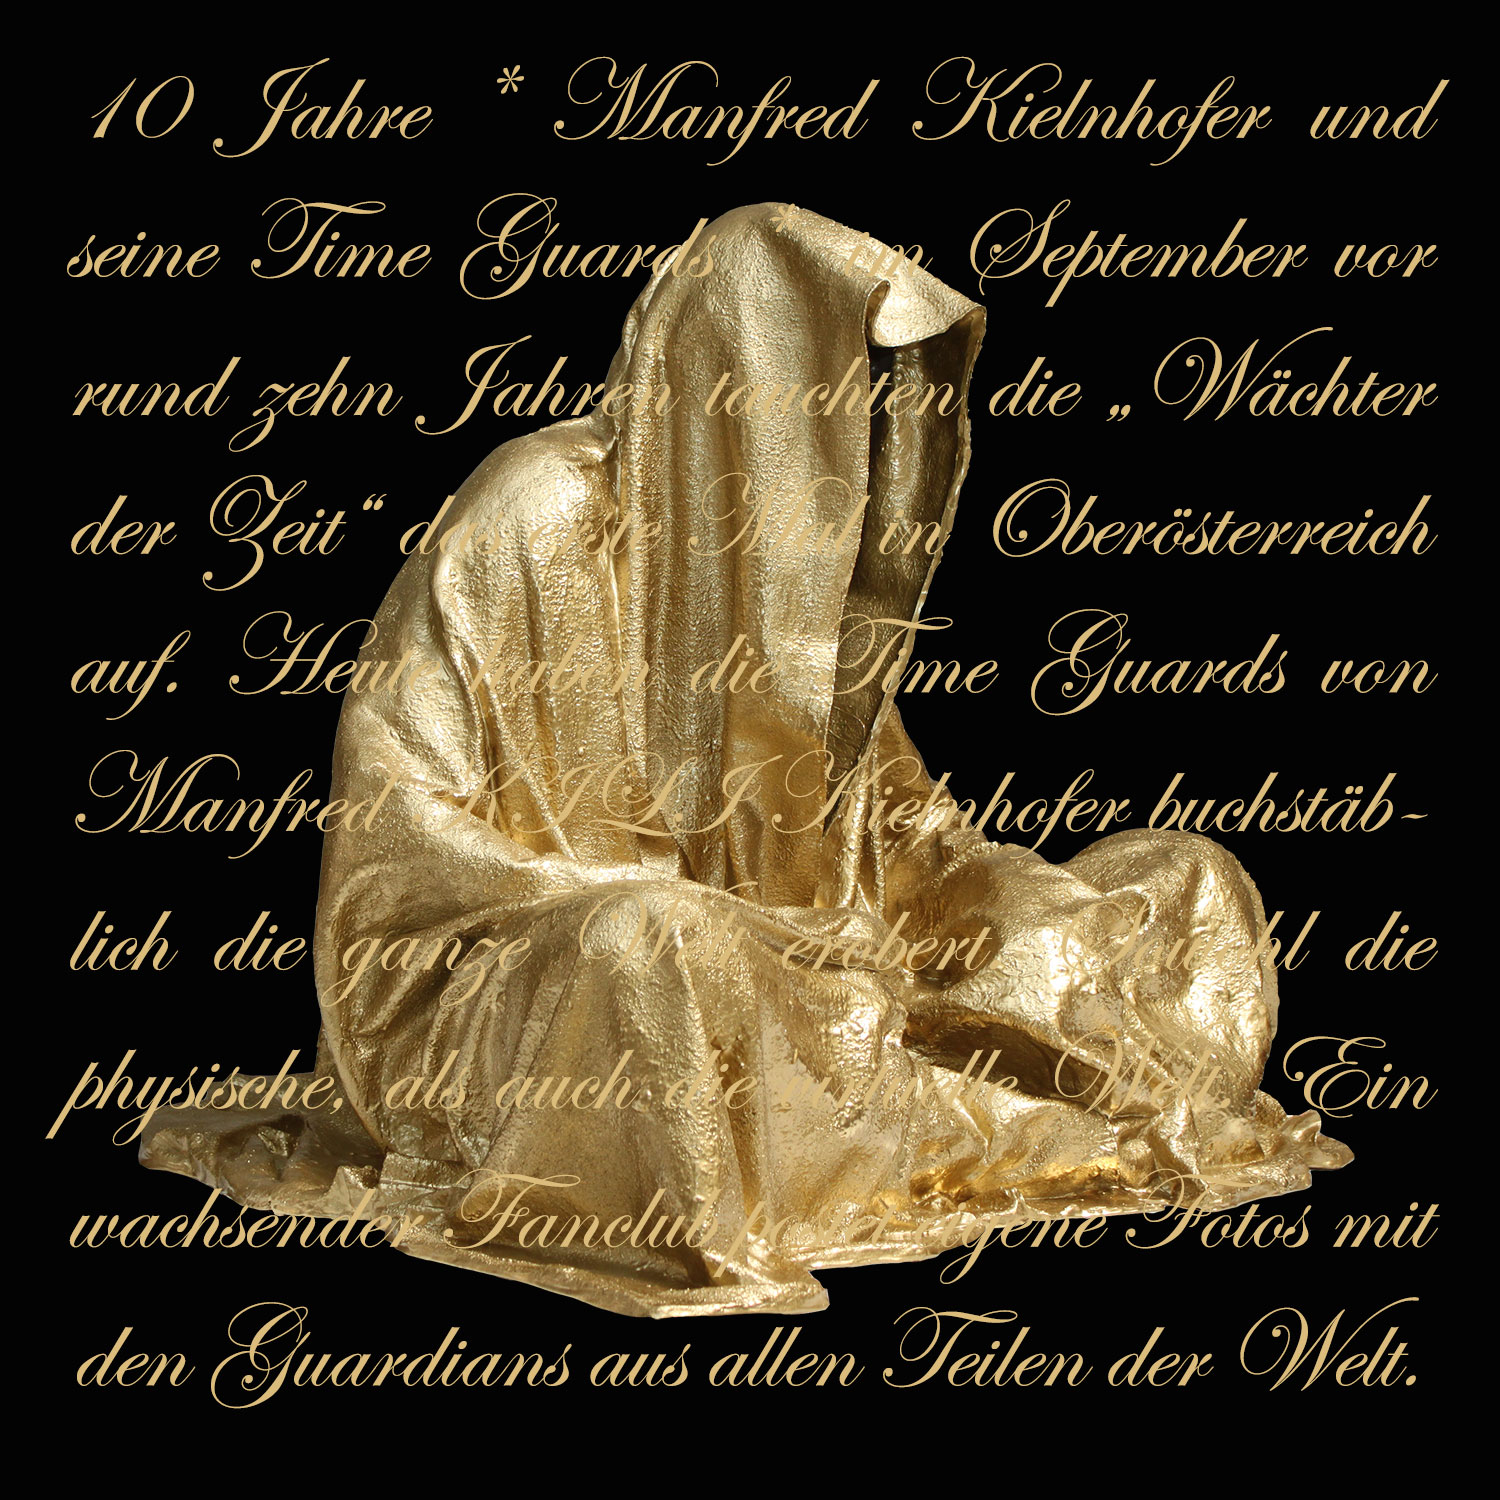 guardians-of-time-waechter-der-zeit-time-keepers-sculptor-manfred-kielnhofer-contemporary-fine-art-sculpture-statue-3d-shape-arts-design-2490gold